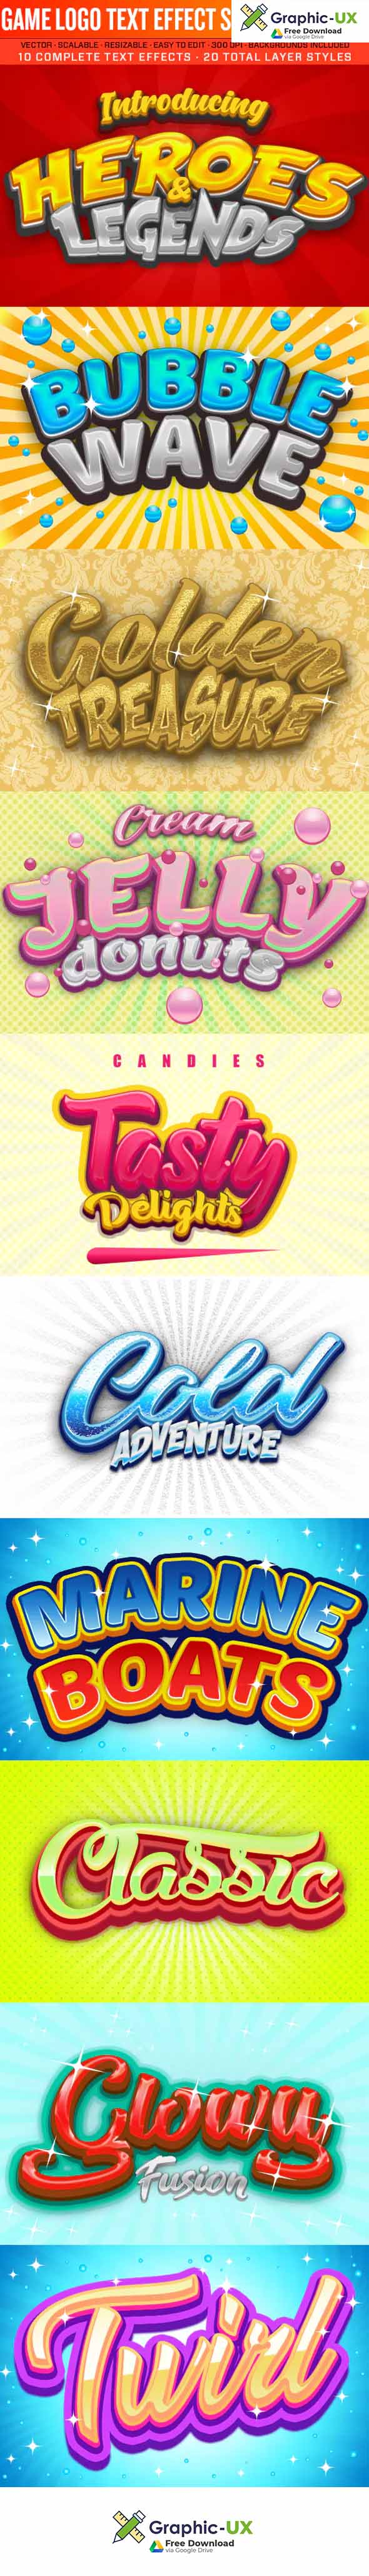 Game Logo Text Effect Styles 2